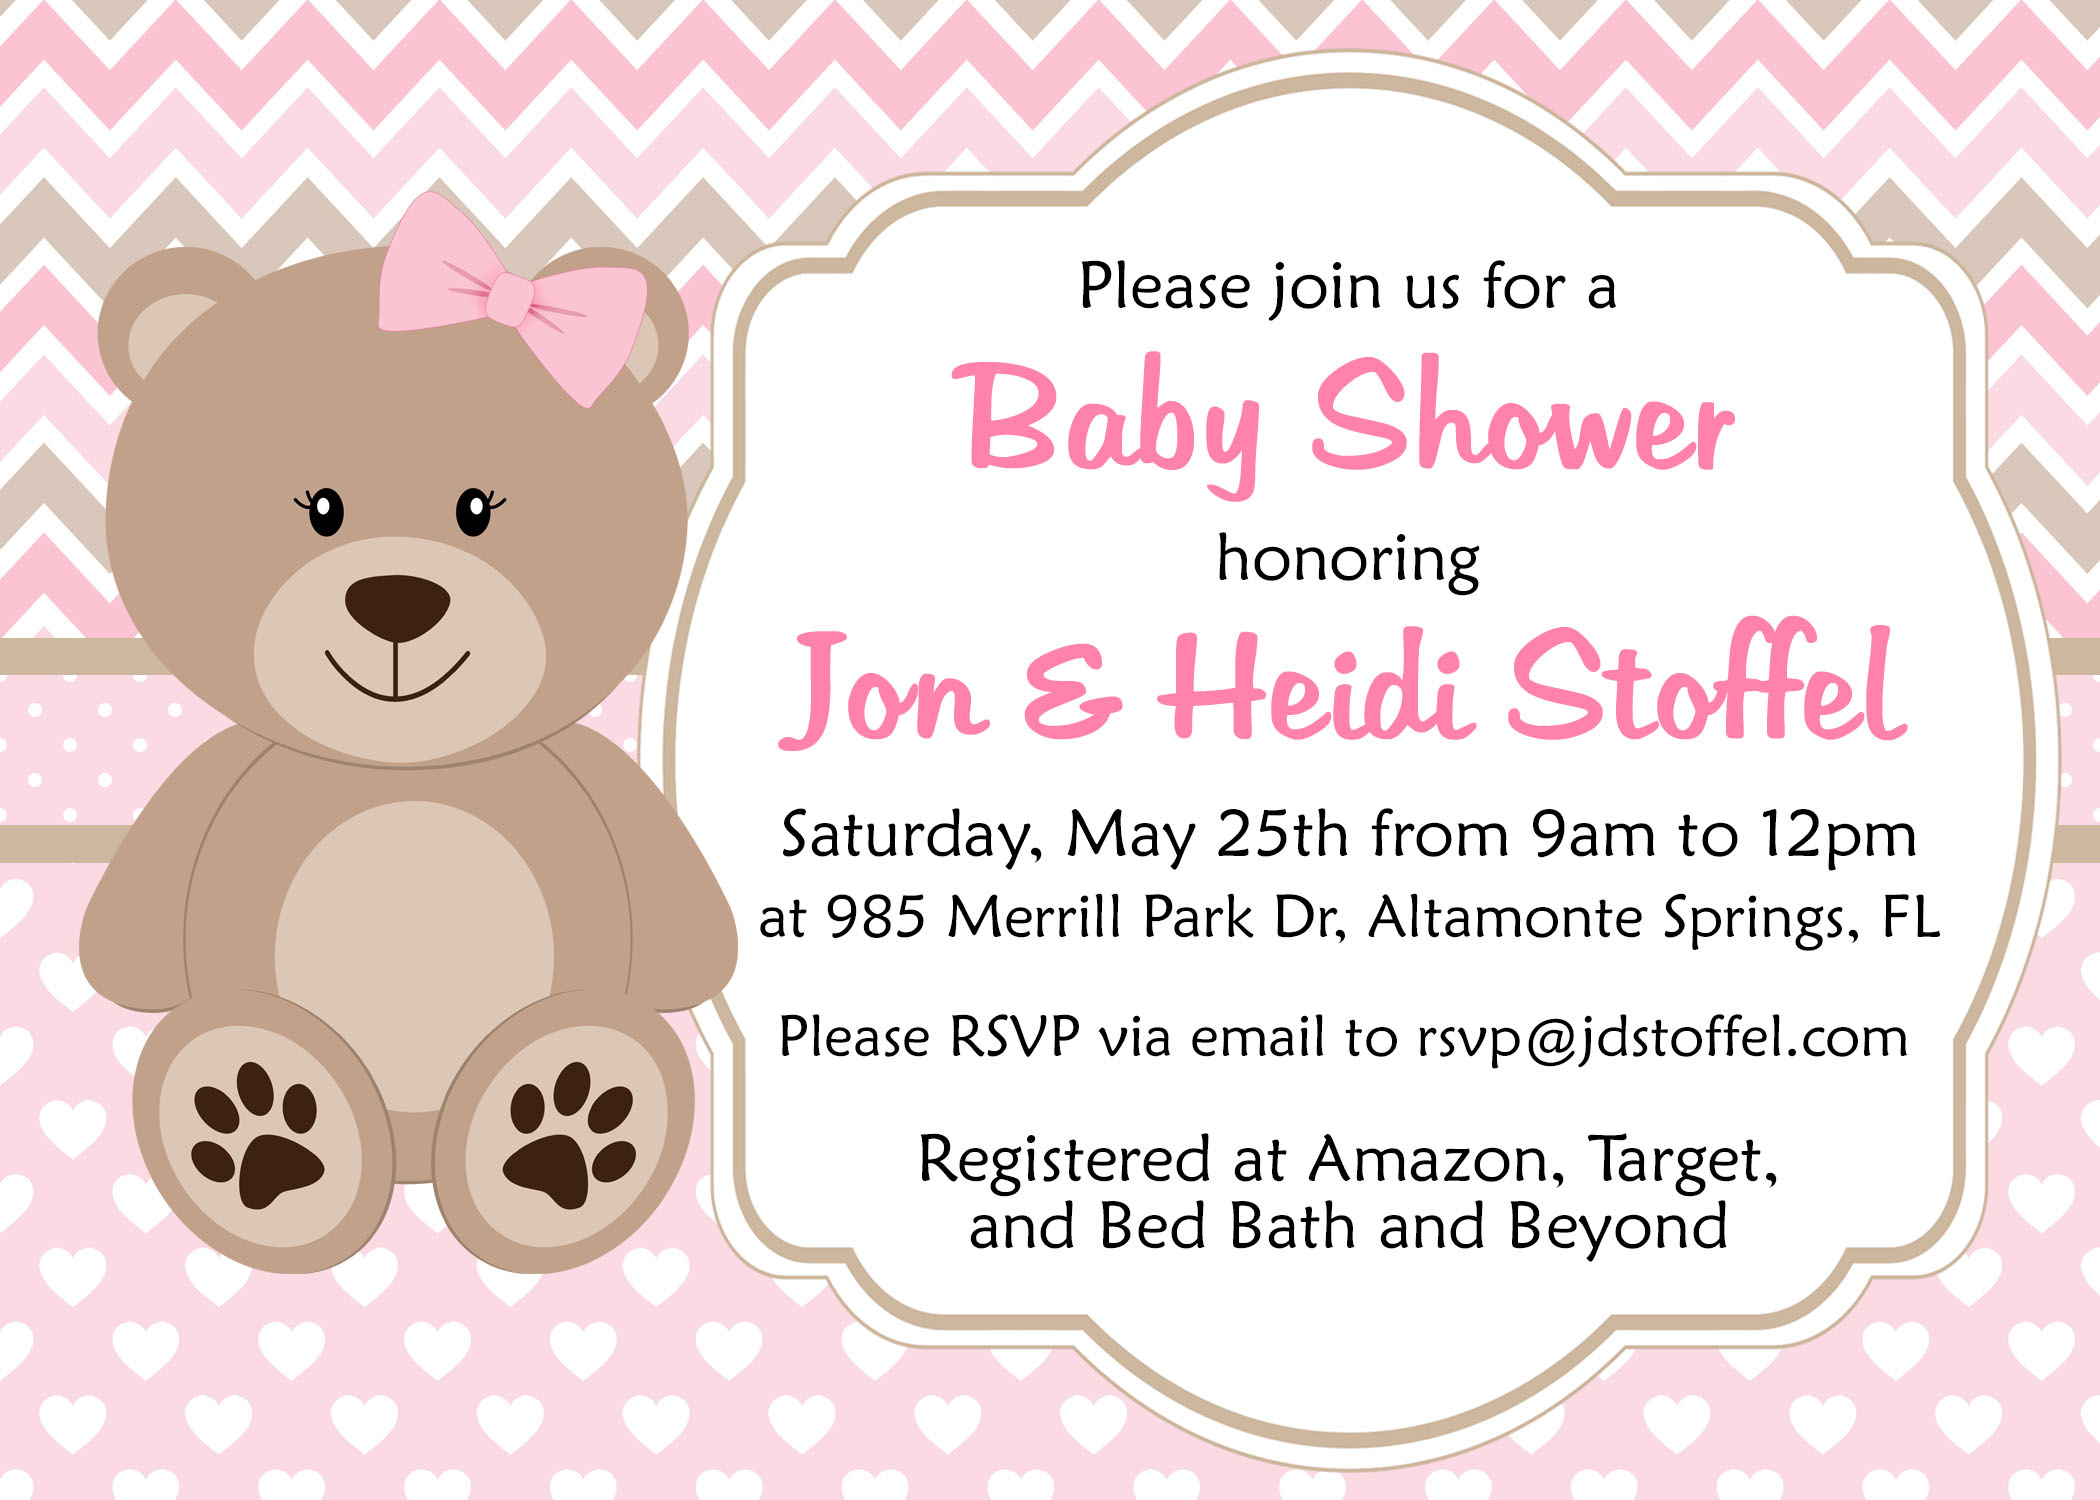 Please join us for a baby shower honoring Jon & Heidi Stoffel. Saturday, May 25th from 9 AM to 12 PM at 985 Merrill Park Dr., Altamonte Springs, FL. Please RSVP via email to rsvp@jdstoffel.com. Registered at Amazon, Target, and Bed Bath and Beyond.